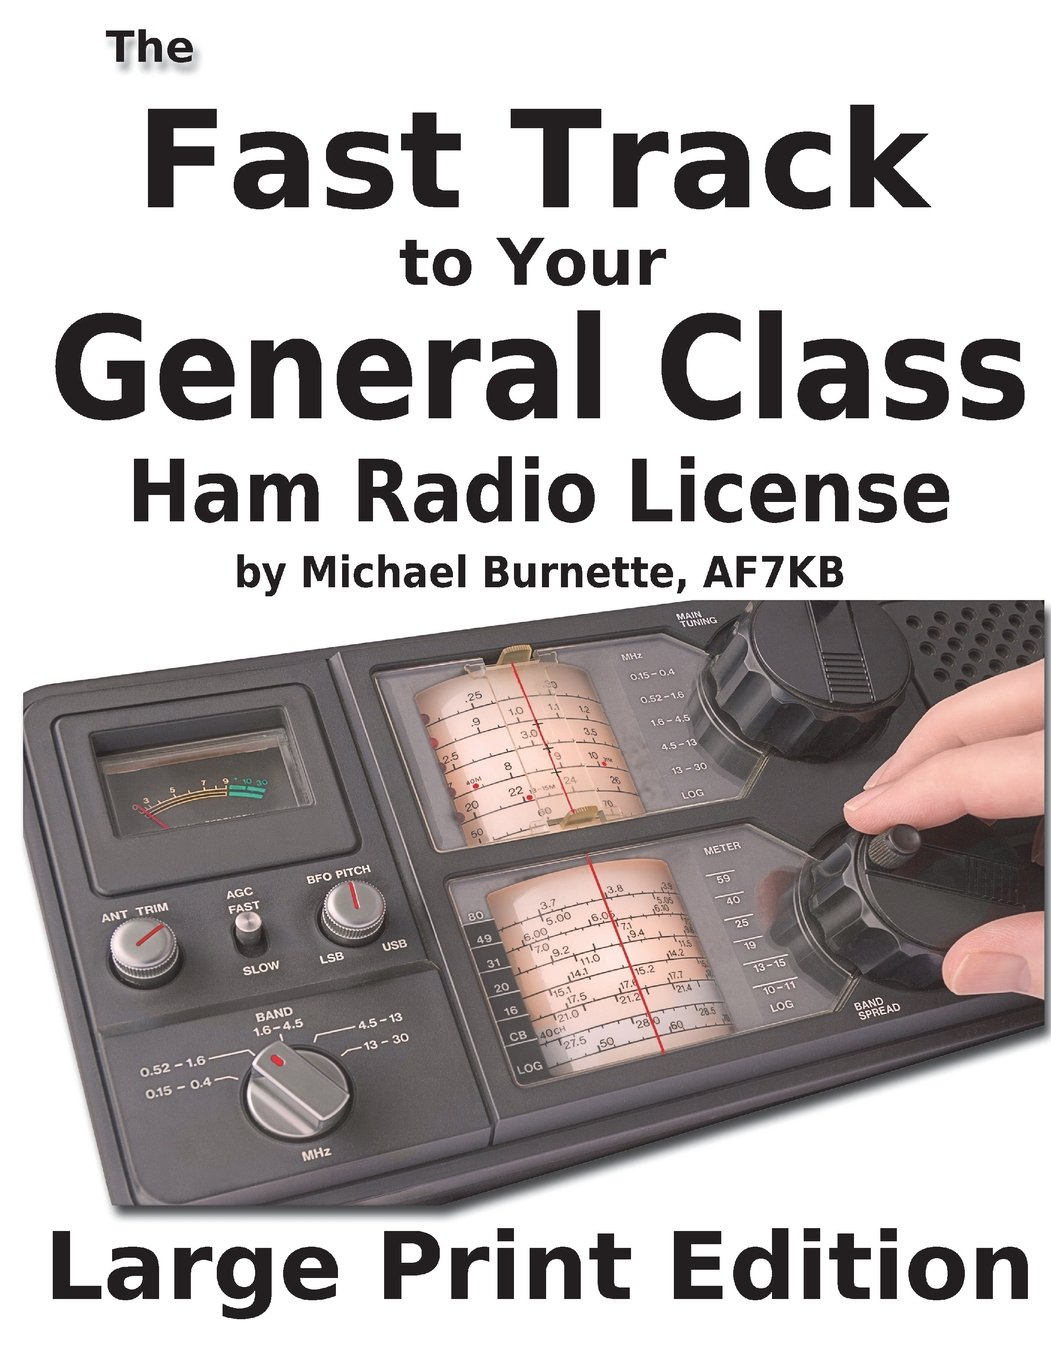 The Fast Track to Your General Class Ham License: Covers all FCC General Class Exam Questions July 1, 2015 until June 30, 2019 (Fast Track Ham License Series) (Volume 2) PDF